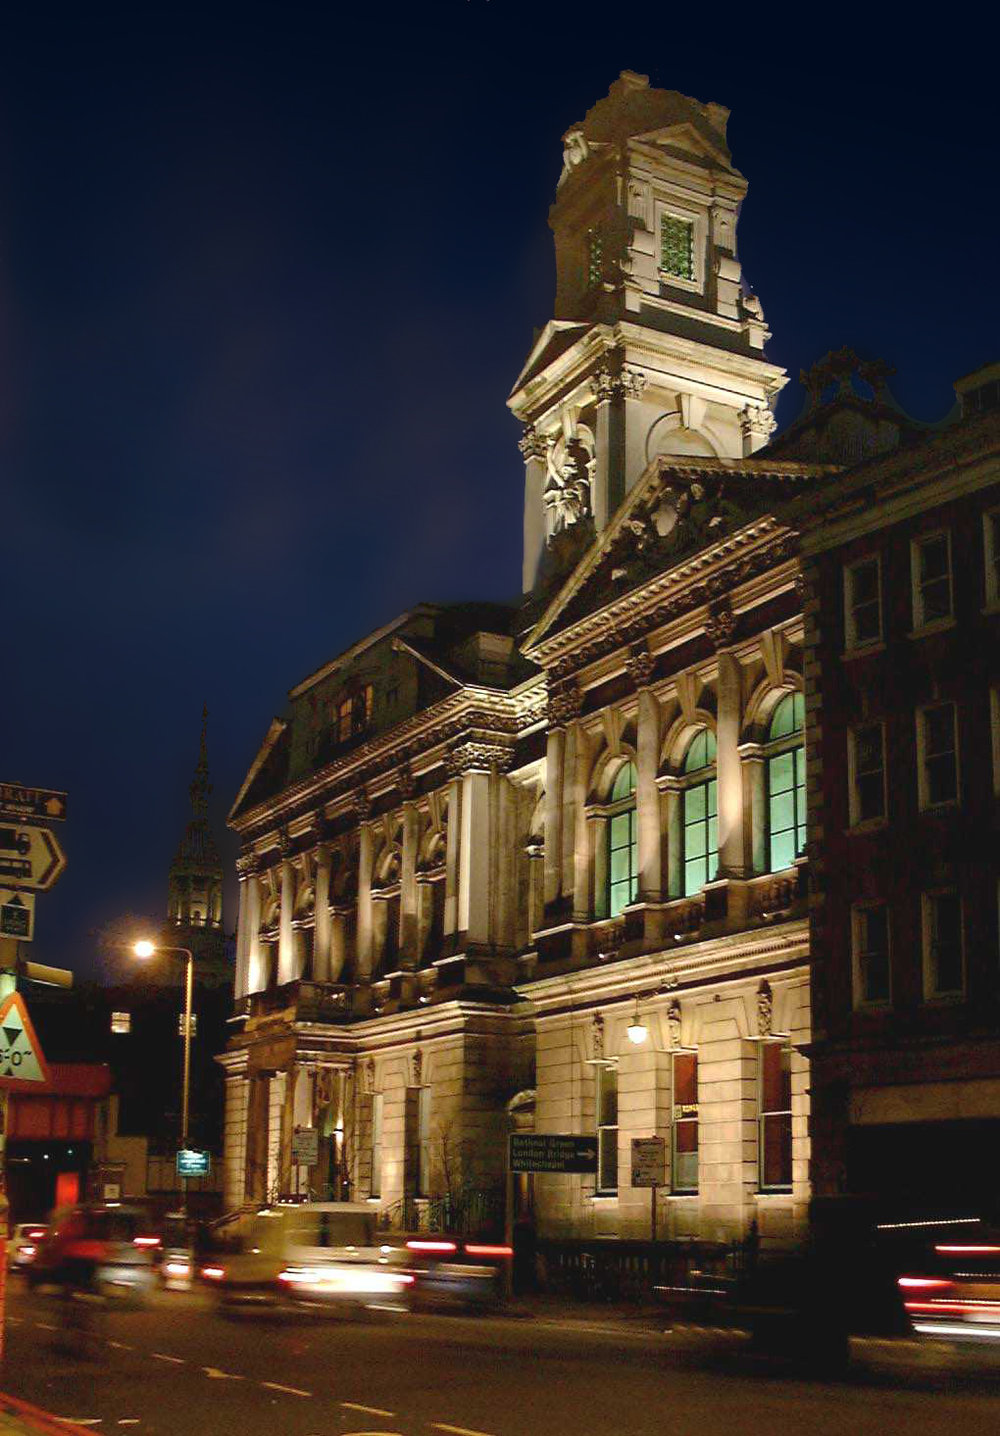 The Town Hall was formerly as dark as the building on the right